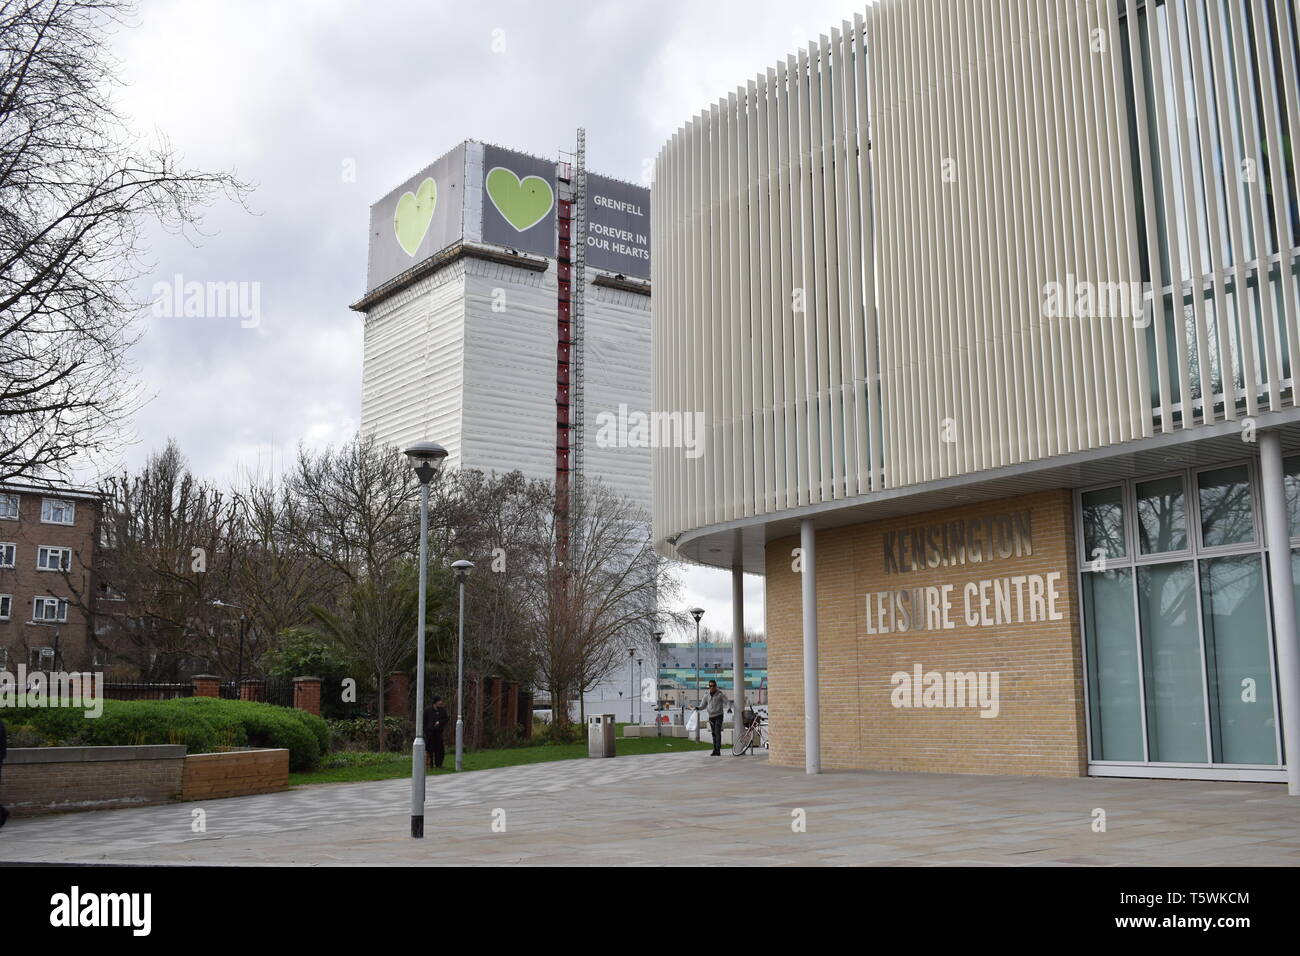 London, UK. March 2 2019. Grenfell Tower with tarpaulin the subject of a public inquiry after devastating fire ripped through all the floors. - Stock Image